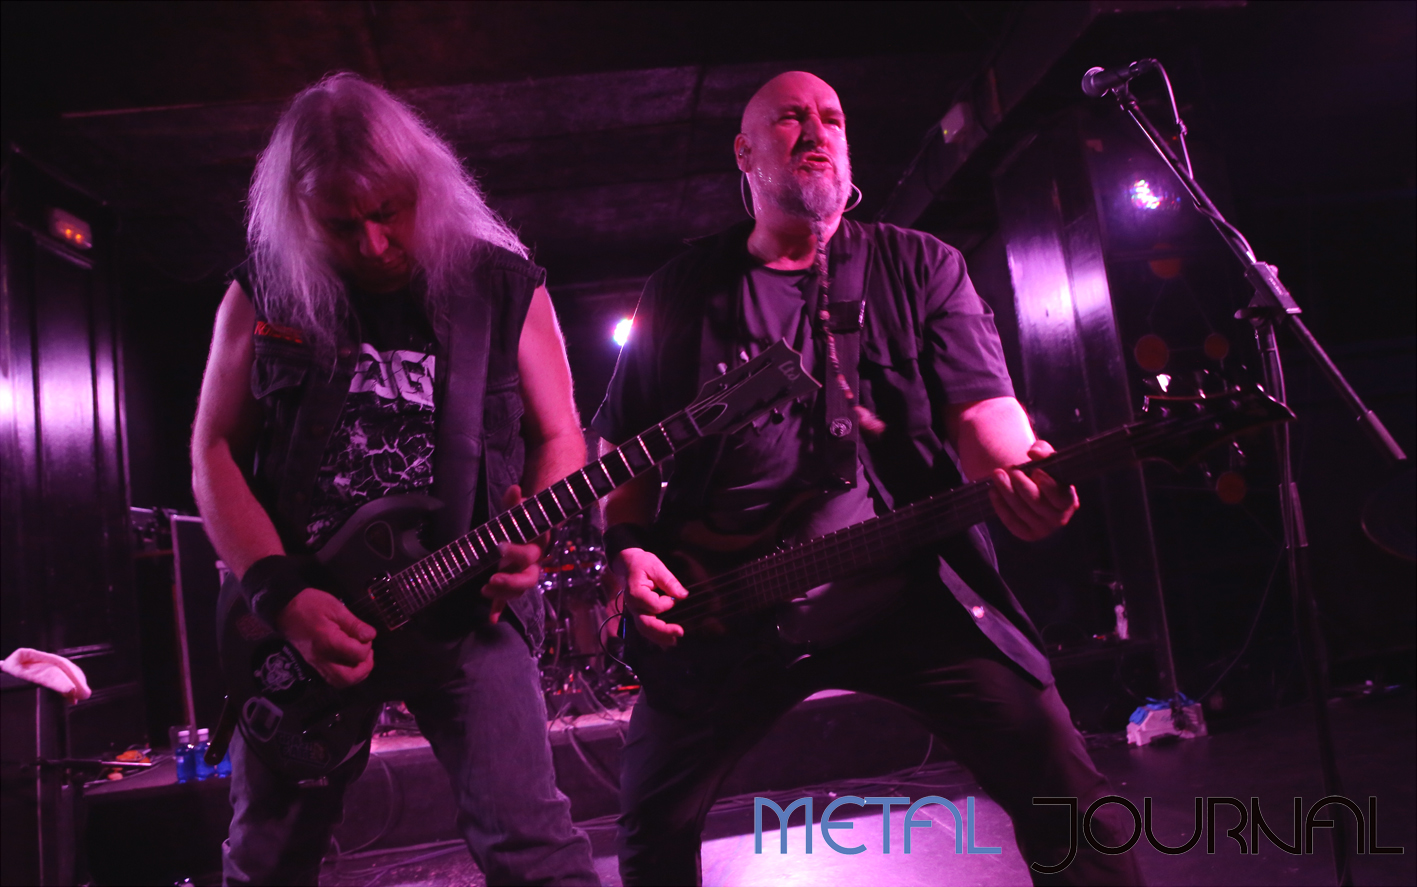 refuge - metal journal 2018 pic 7